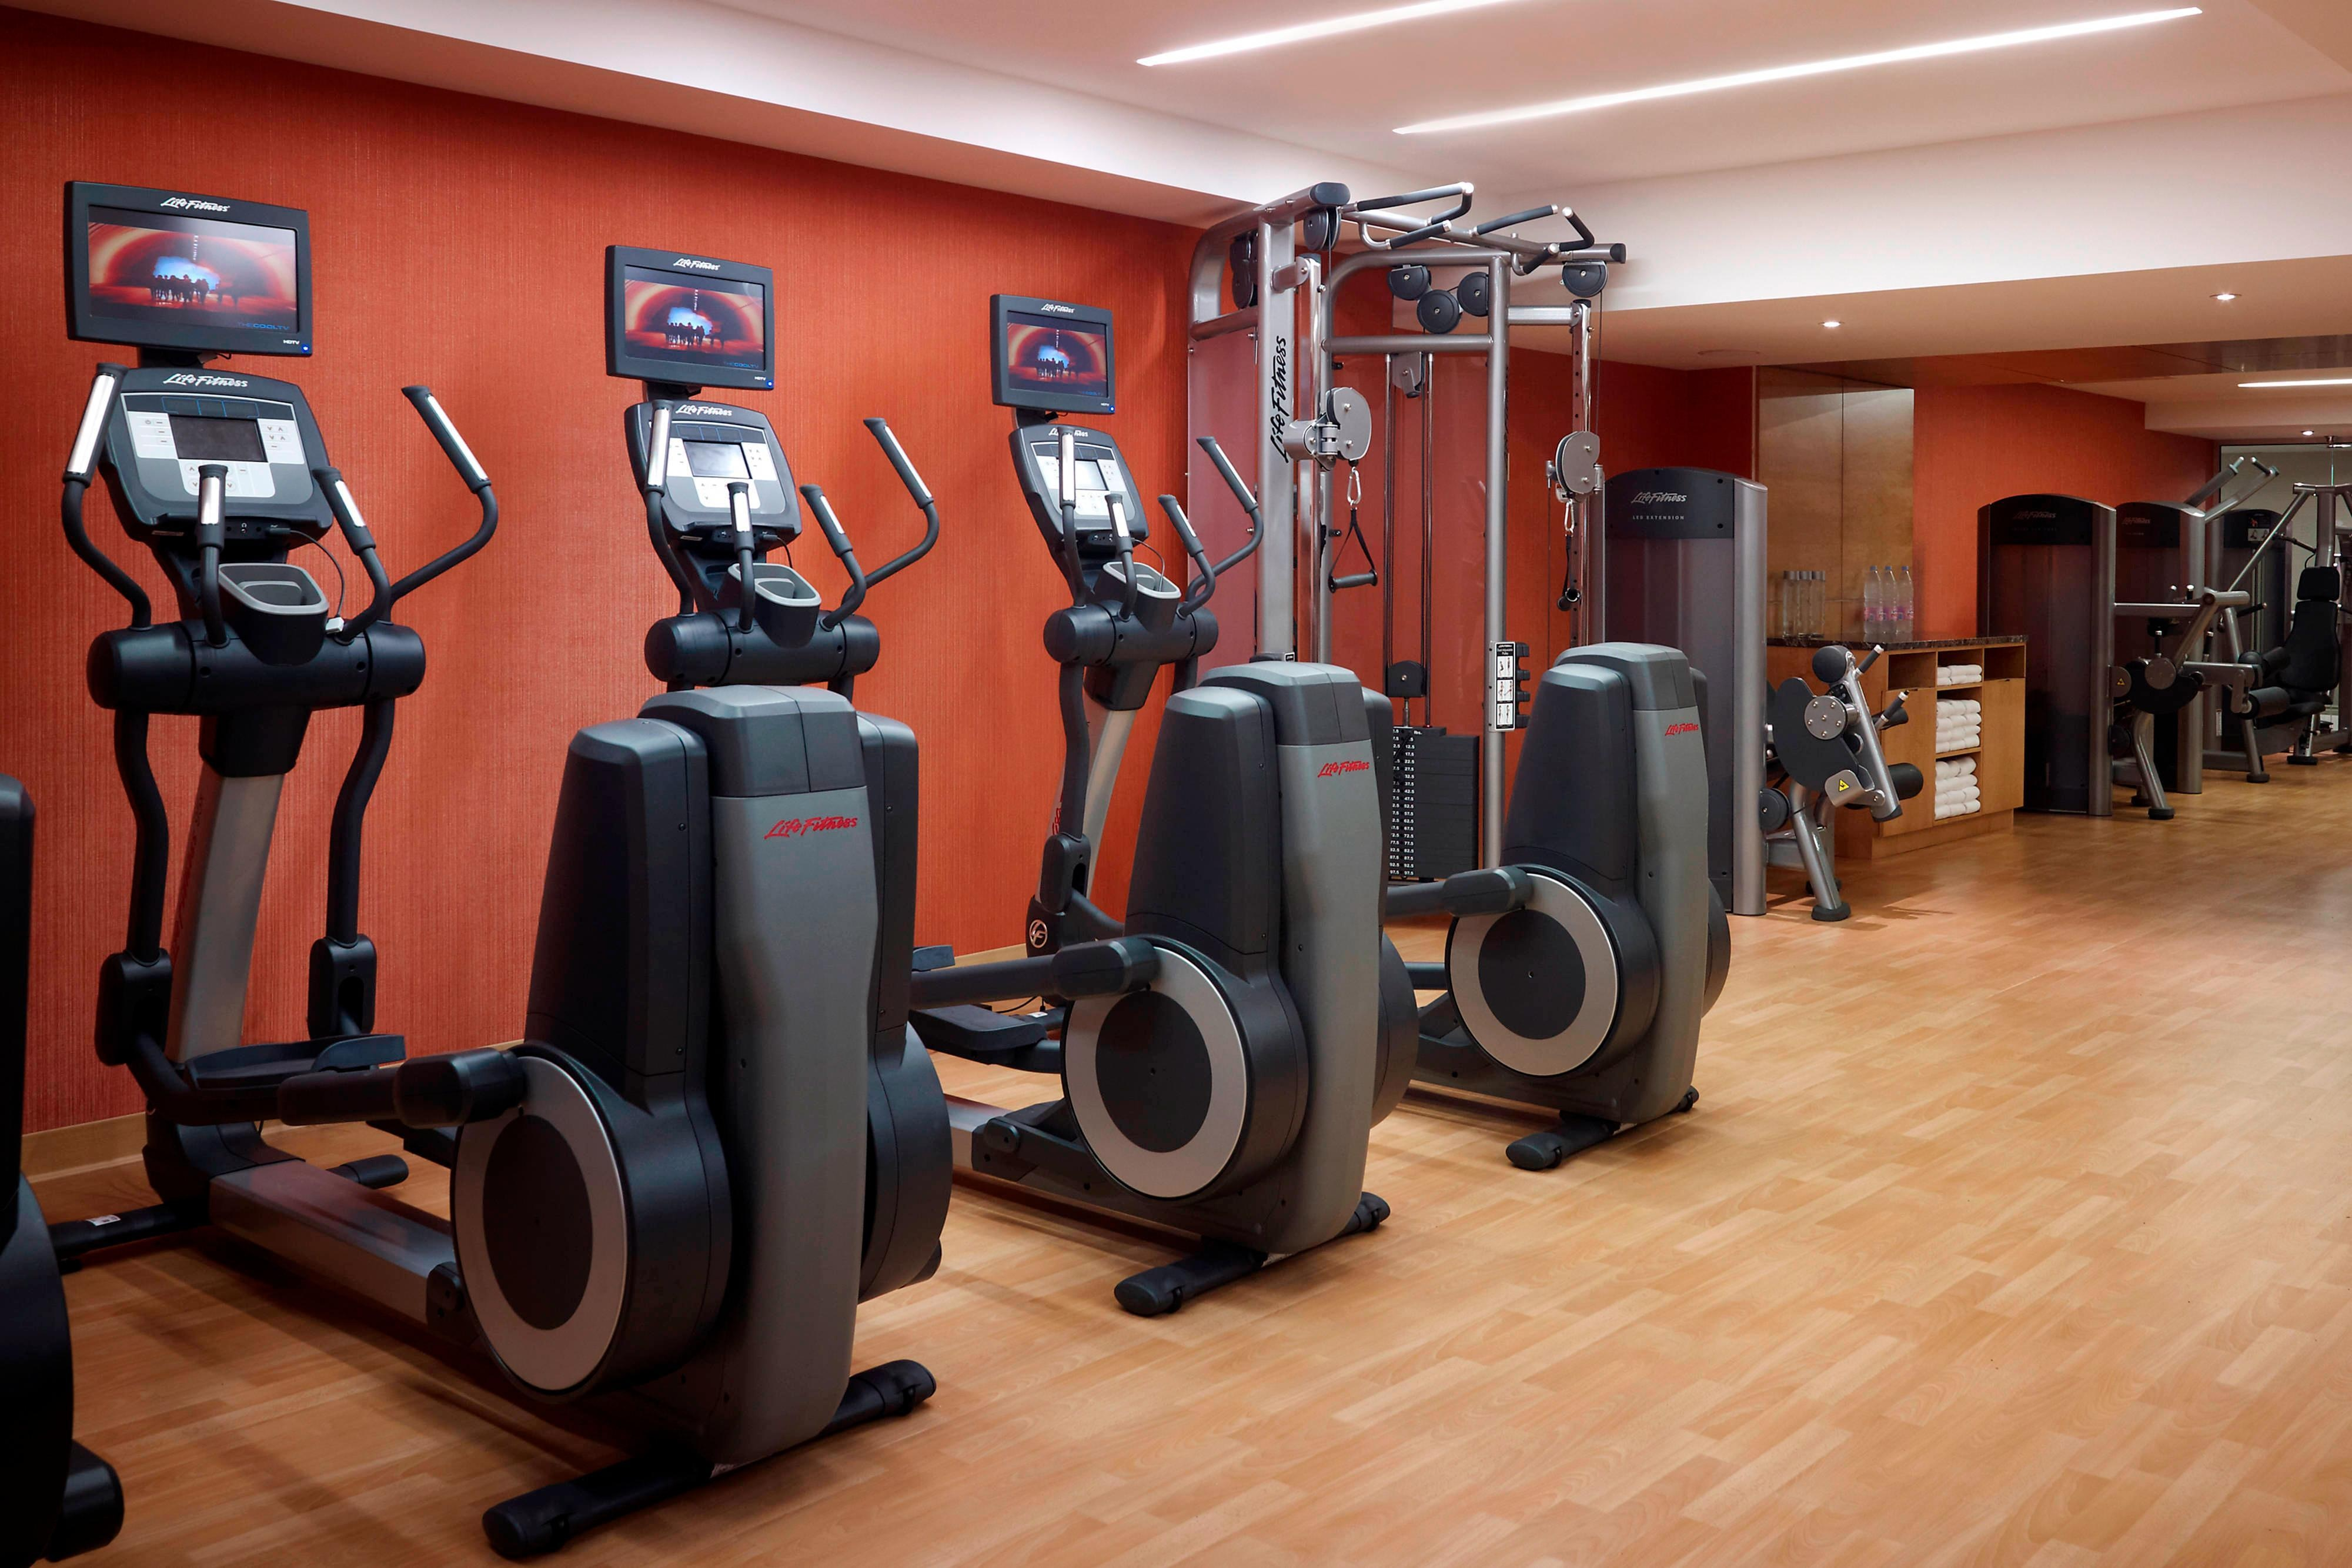 Fallsview hotel fitness center